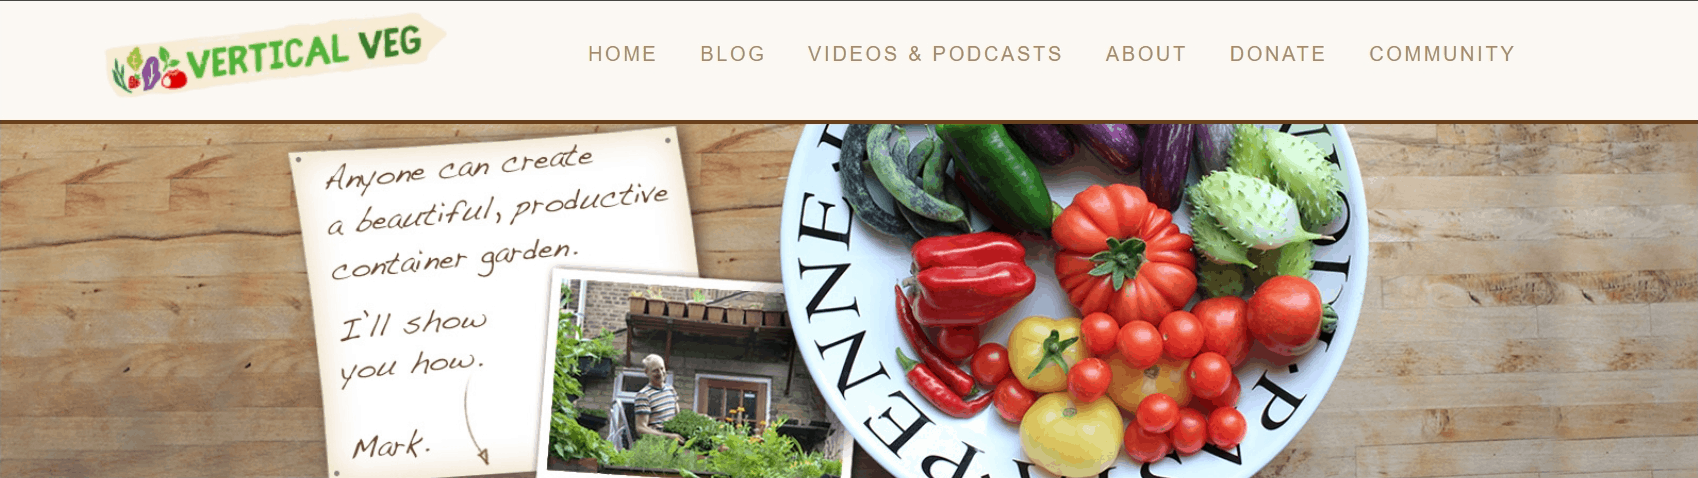 Vertical Veg blog banner with a plate of vegetables